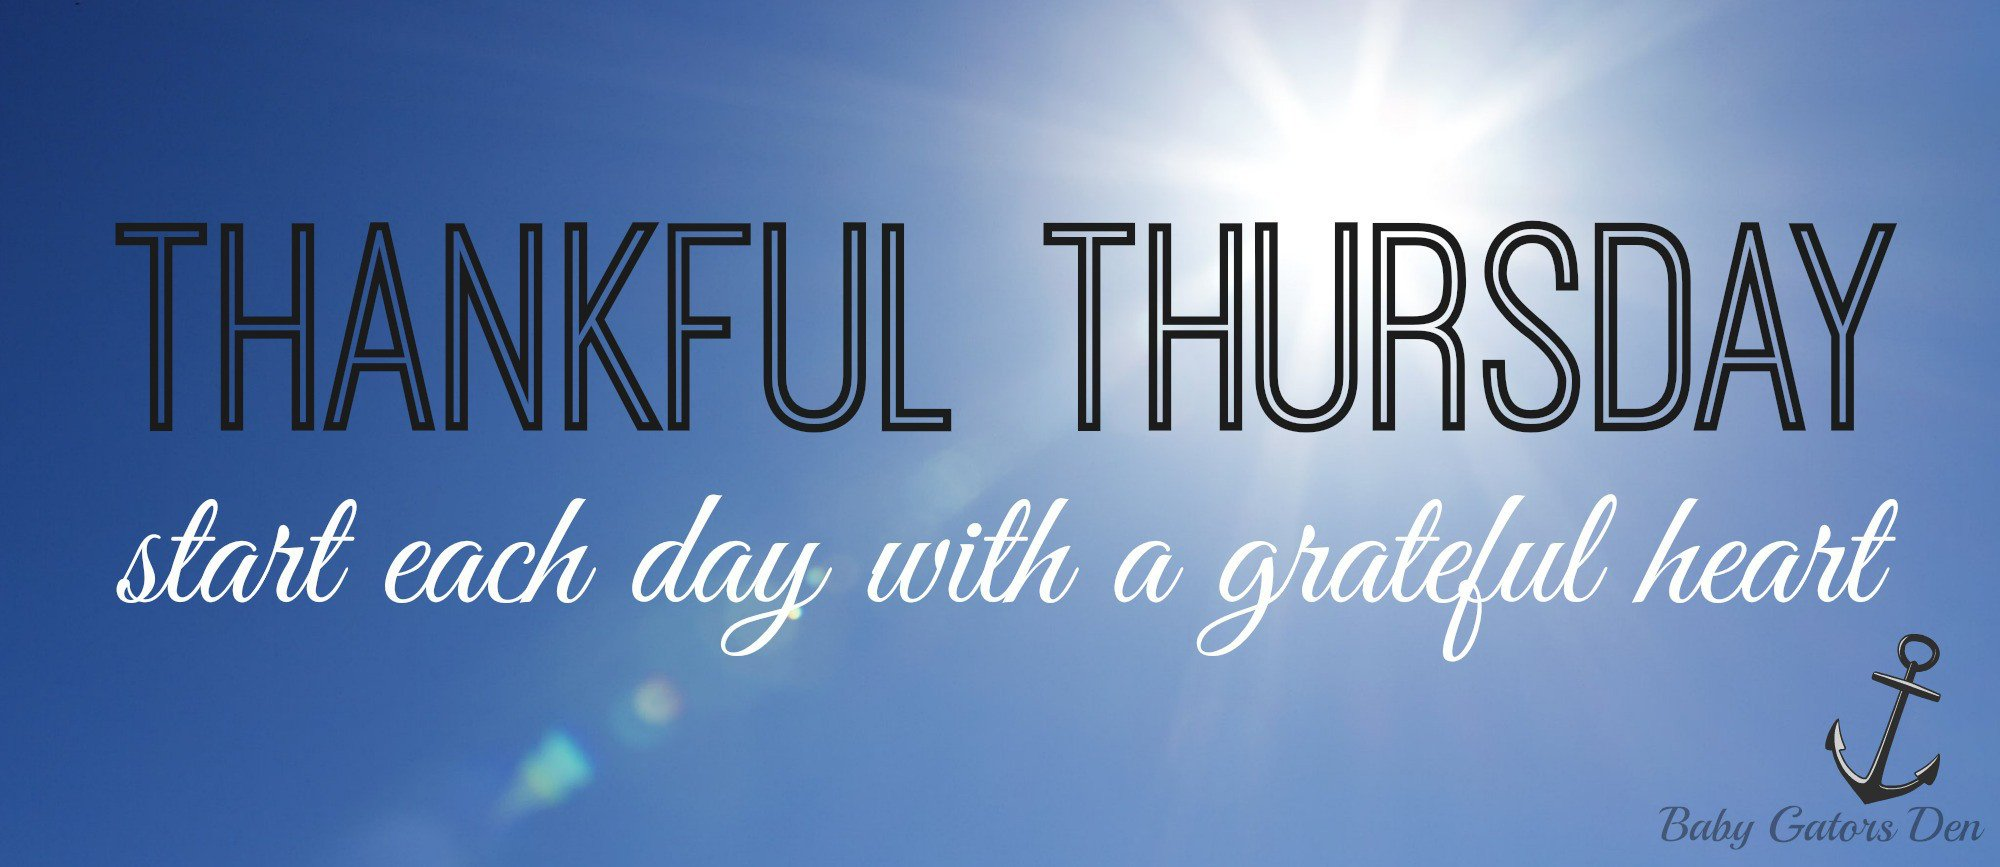 Thankful Thursday Inspirational Quotes Quotesgram